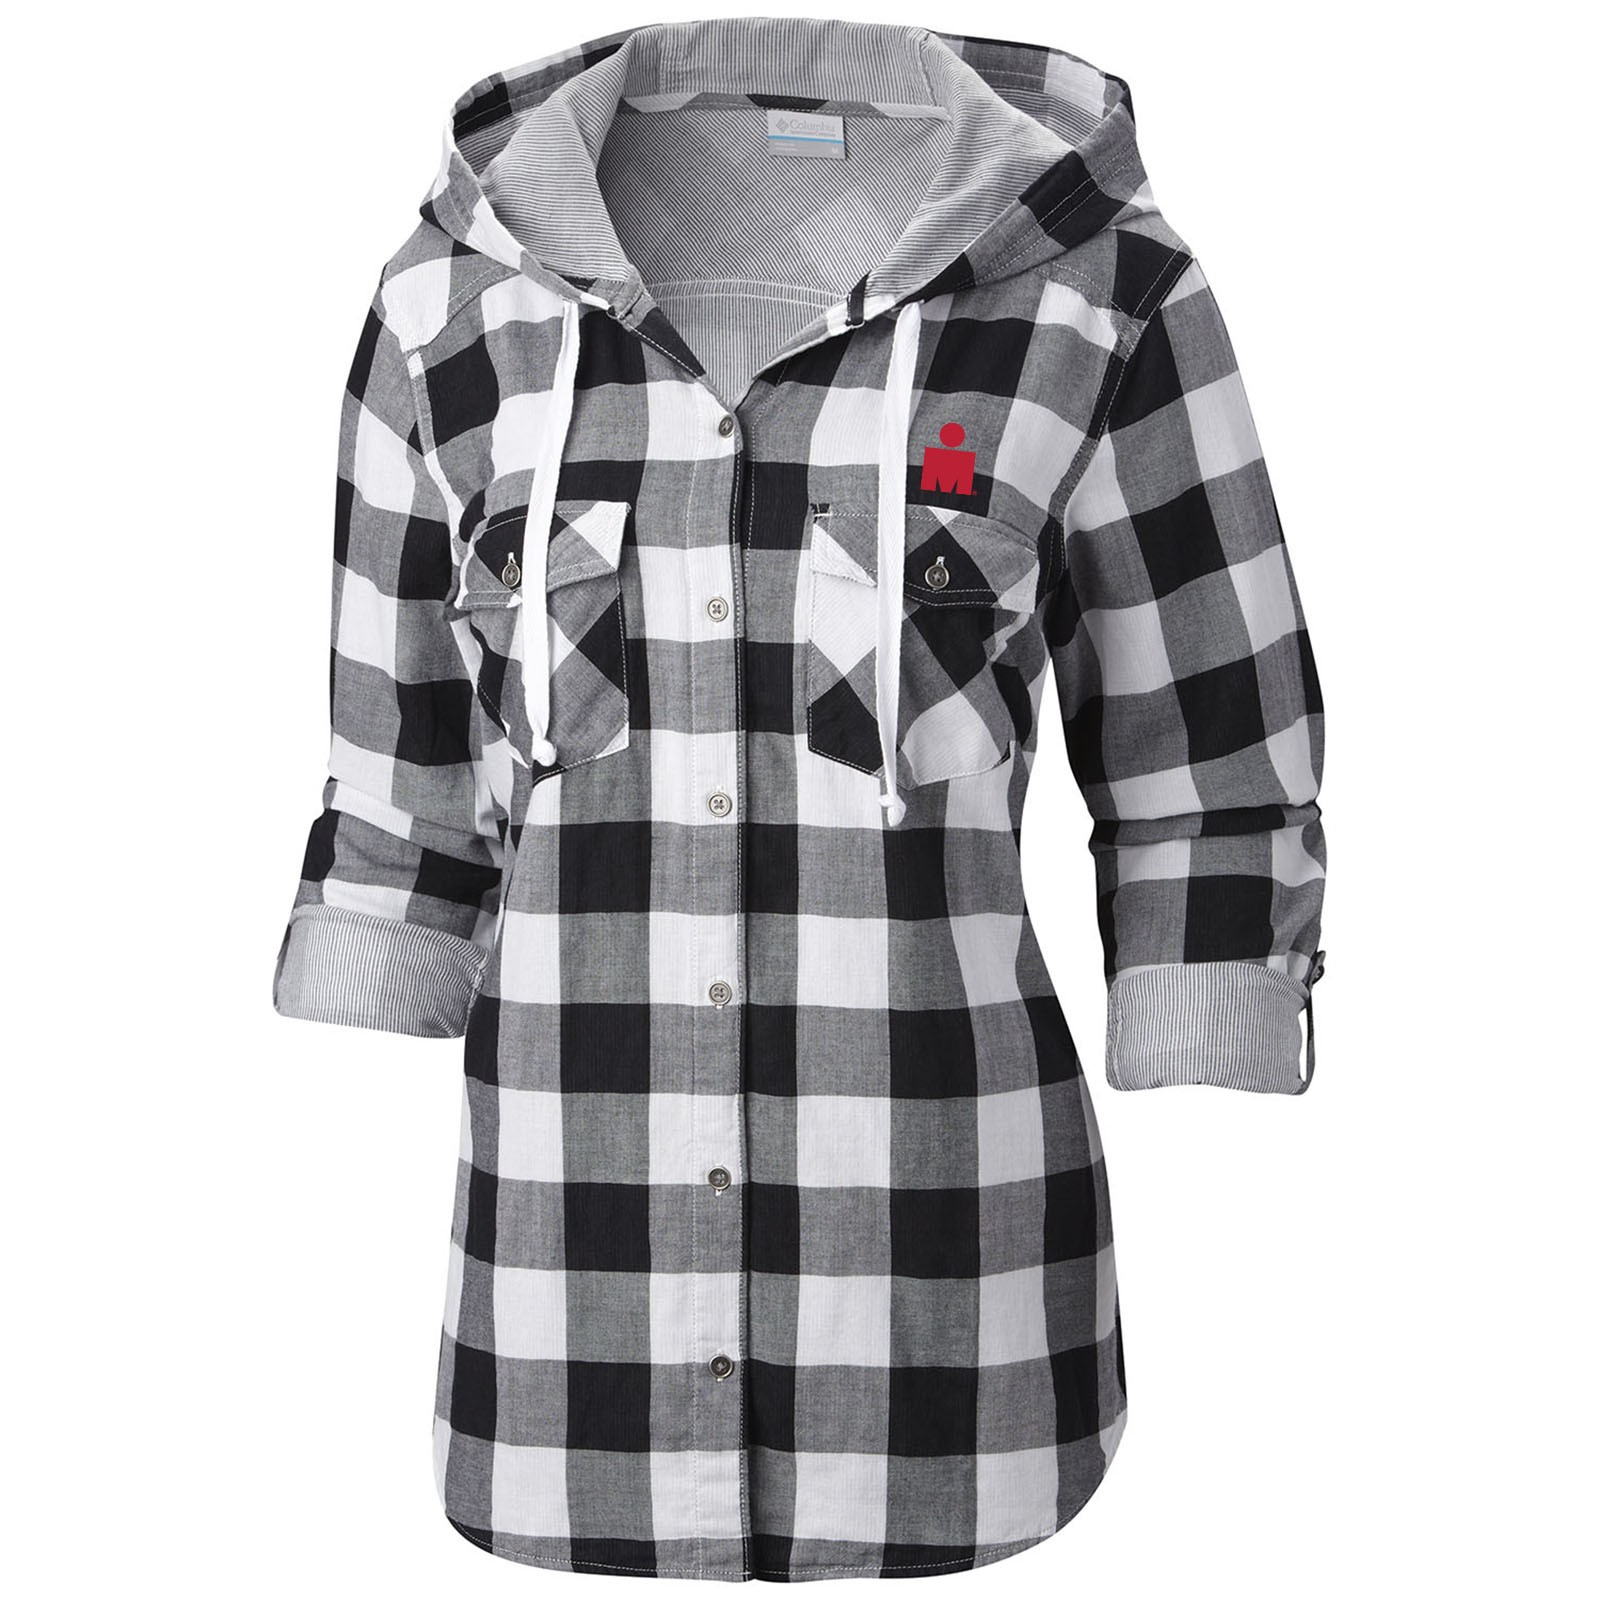 womens flannel shirts ironman columbia womenu0027s times two hooded flannel shirt mwfivdu